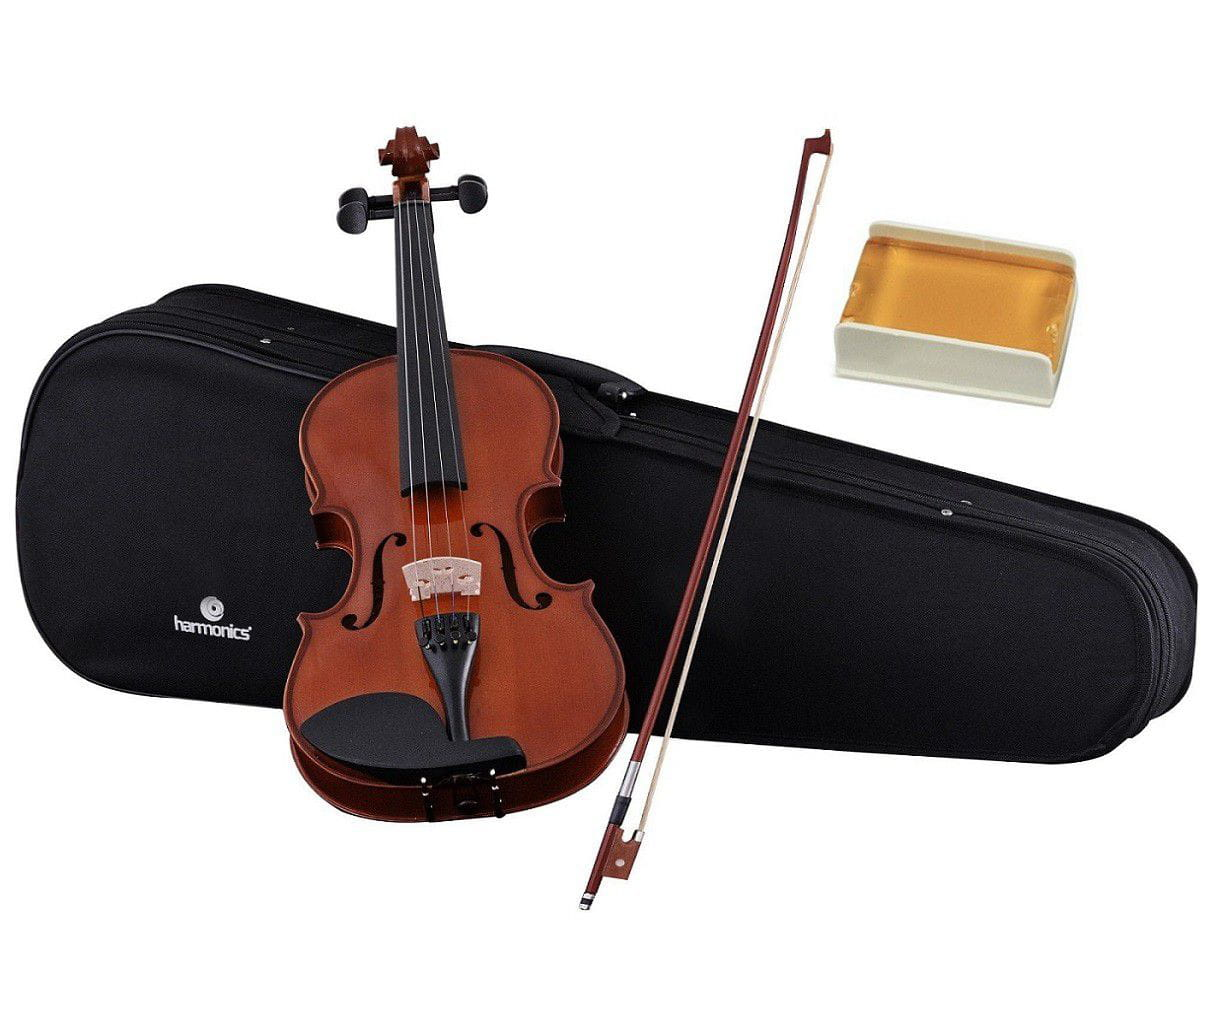 Violino 4/4 VA-10 Spruce Maple Natural + Case + Arco + Breu - HARMONICS